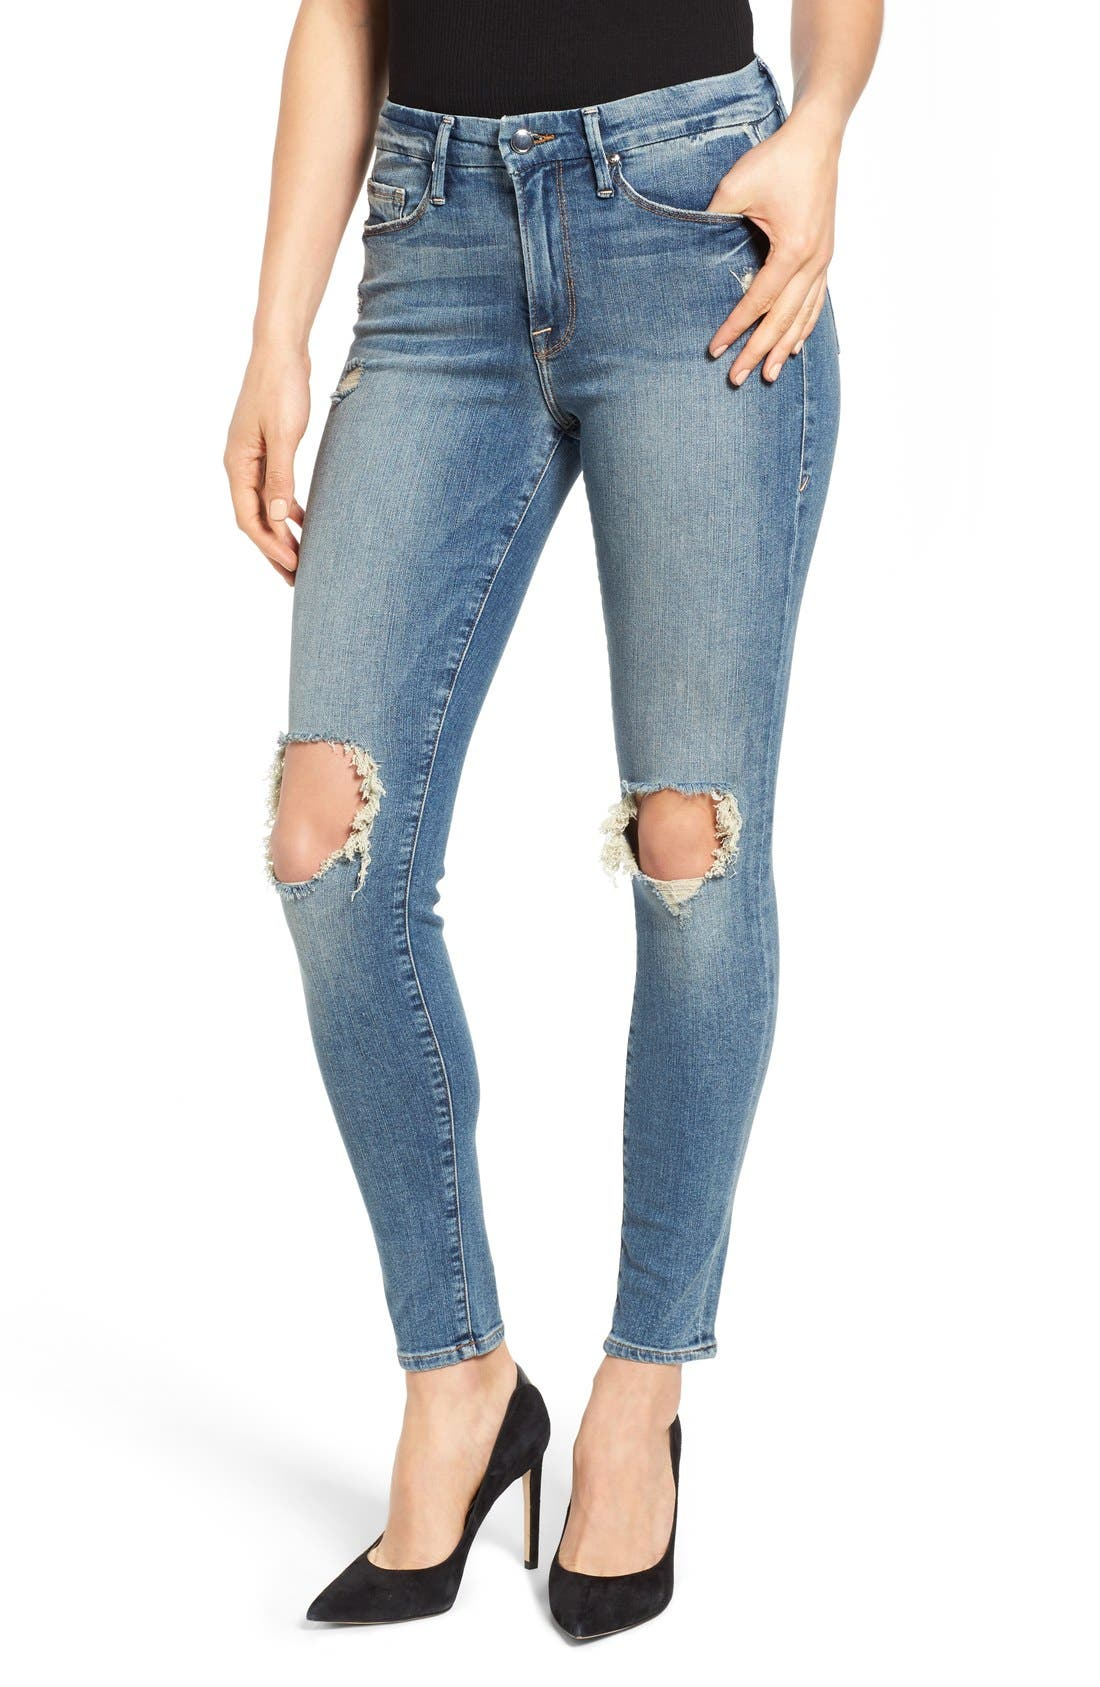 Main Image - Good American Good Legs High Rise Ripped Skinny Jeans (Blue 006)